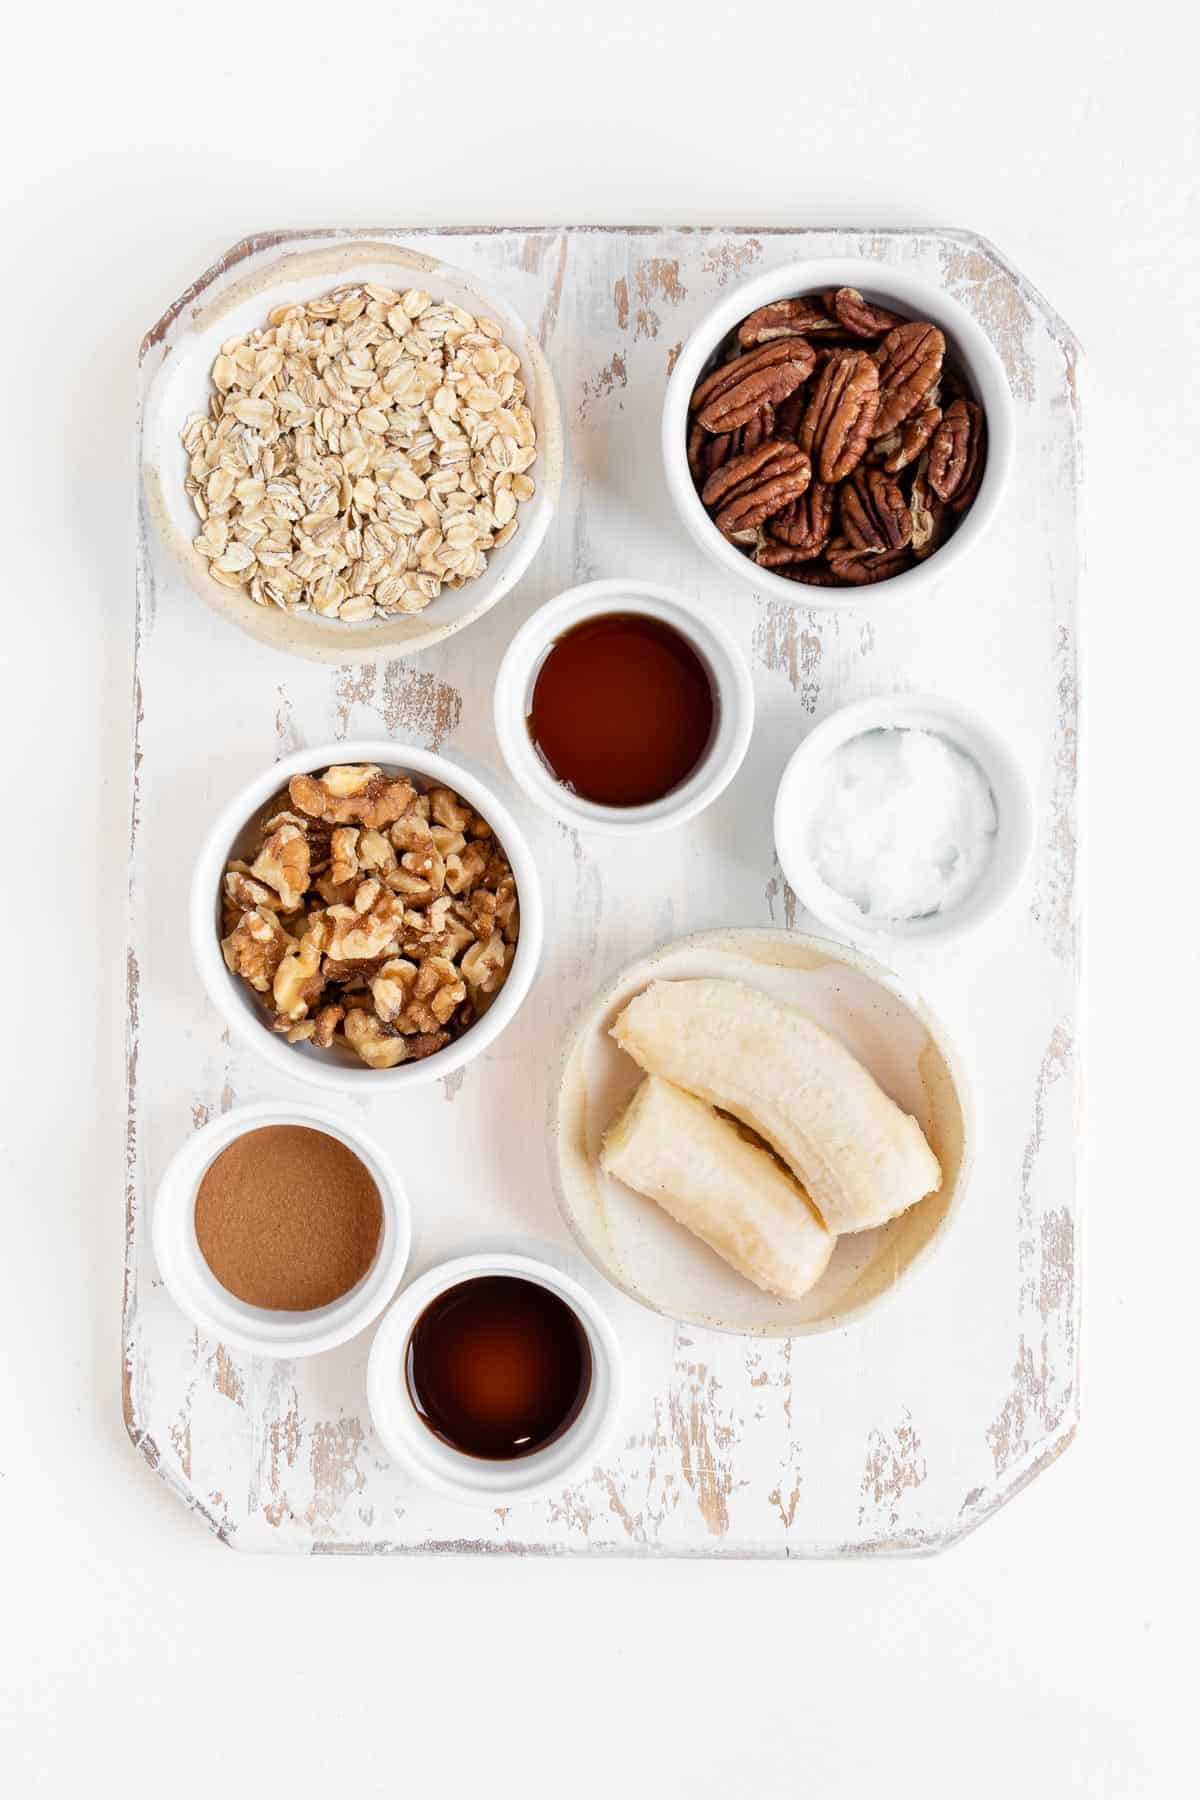 oats, cinnamon, walnuts, pecans, maple syrup, and coconut oil in white bowls on a distressed cutting board